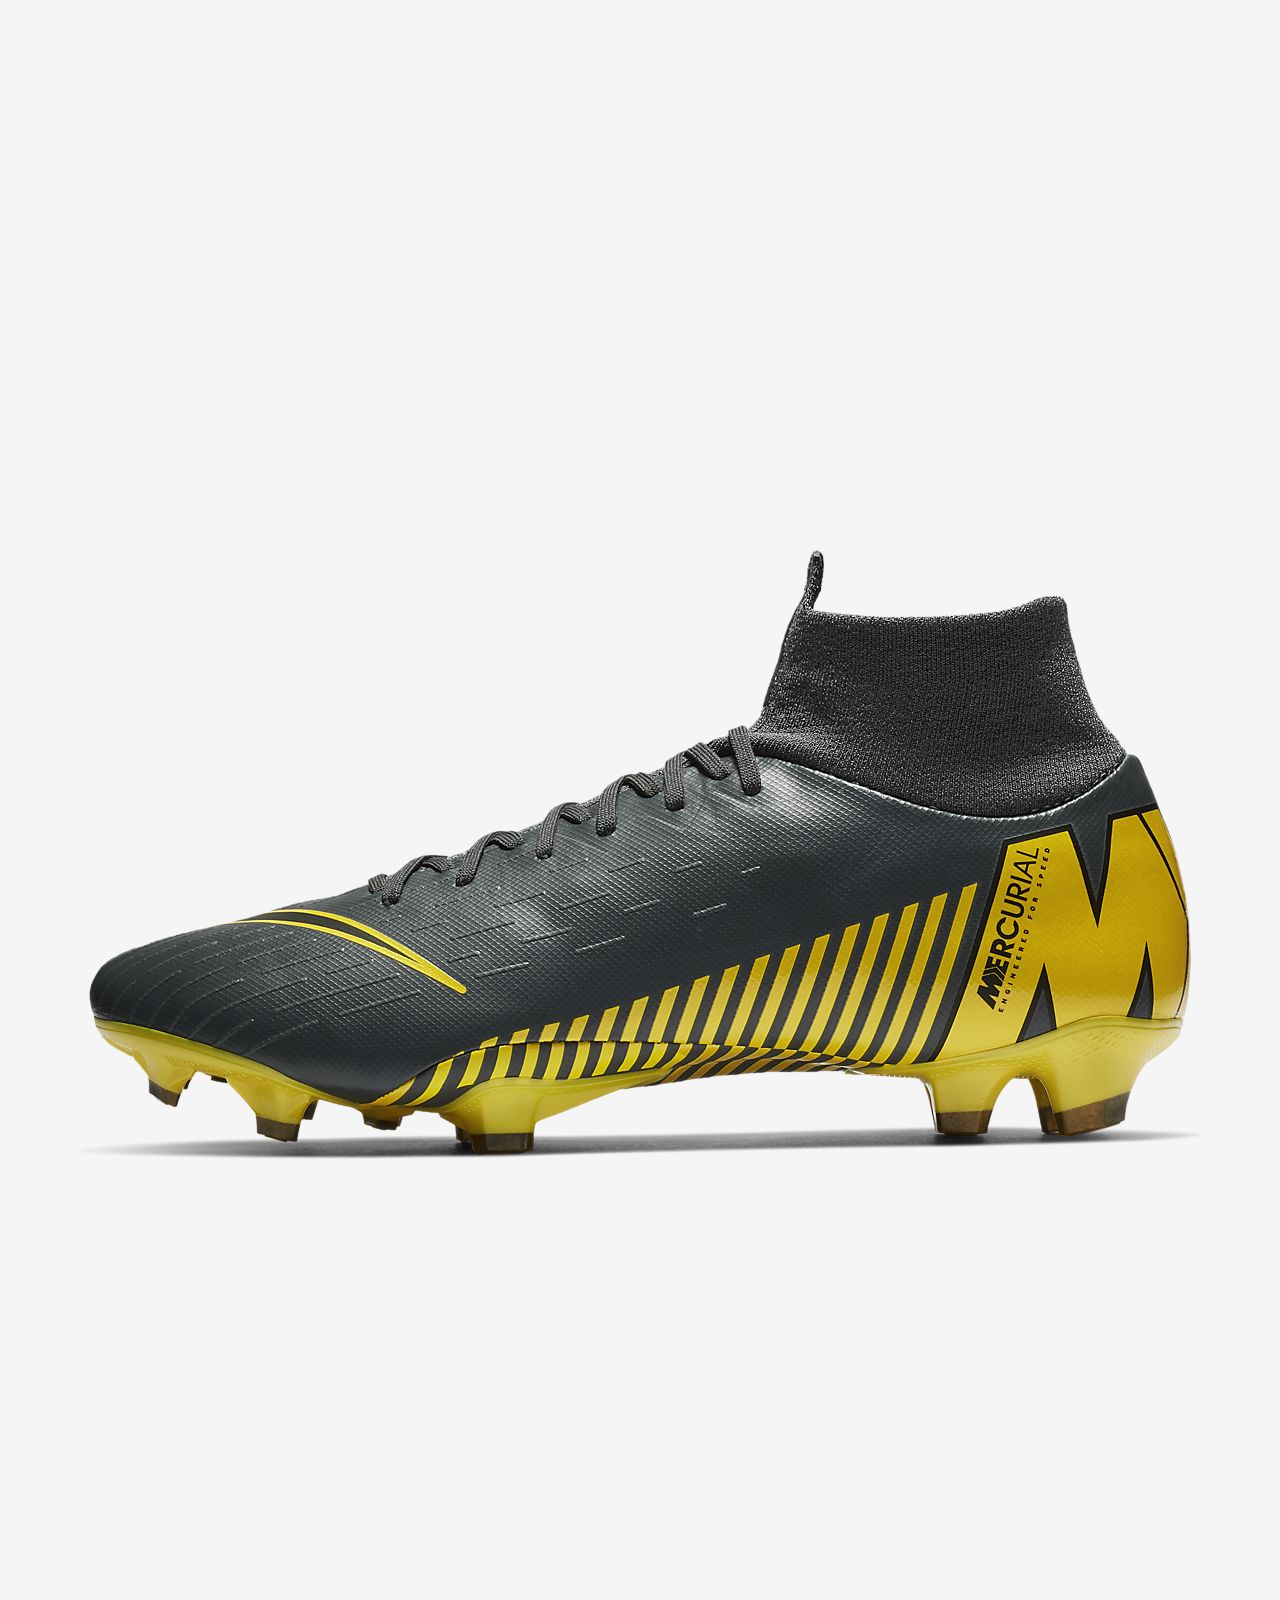 7304336b5 Nike Superfly 6 Pro FG Firm-Ground Football Boot. Nike.com GB